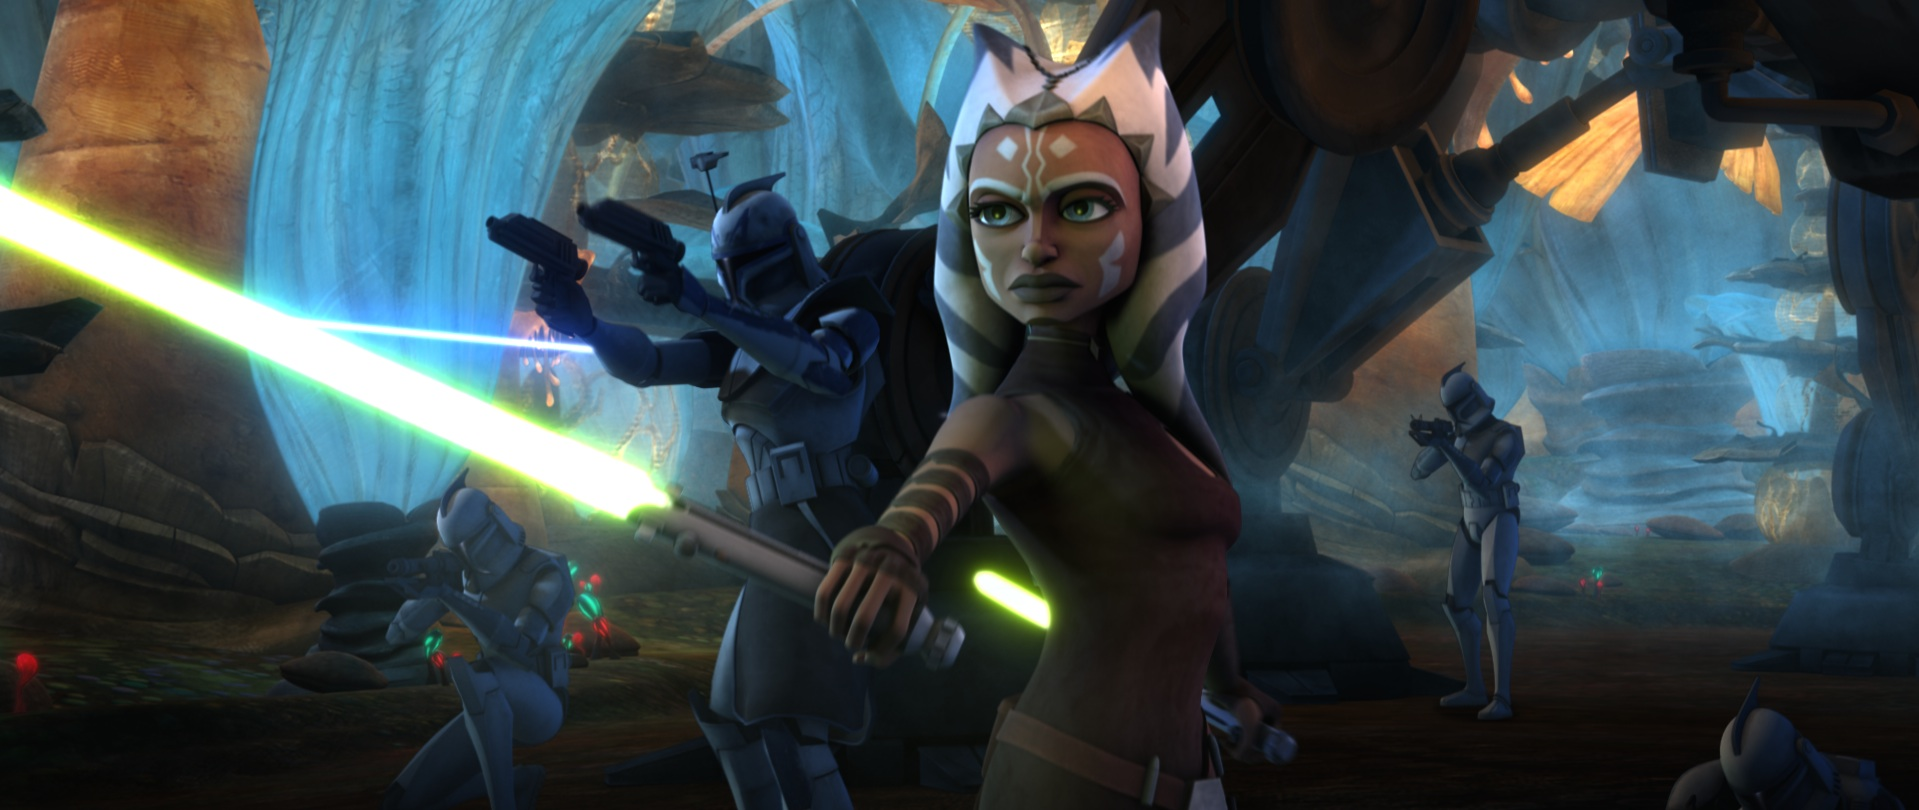 Star Wars The Clone Wars Wallpapers Movie Hq Star Wars The Clone Wars Pictures 4k Wallpapers 2019